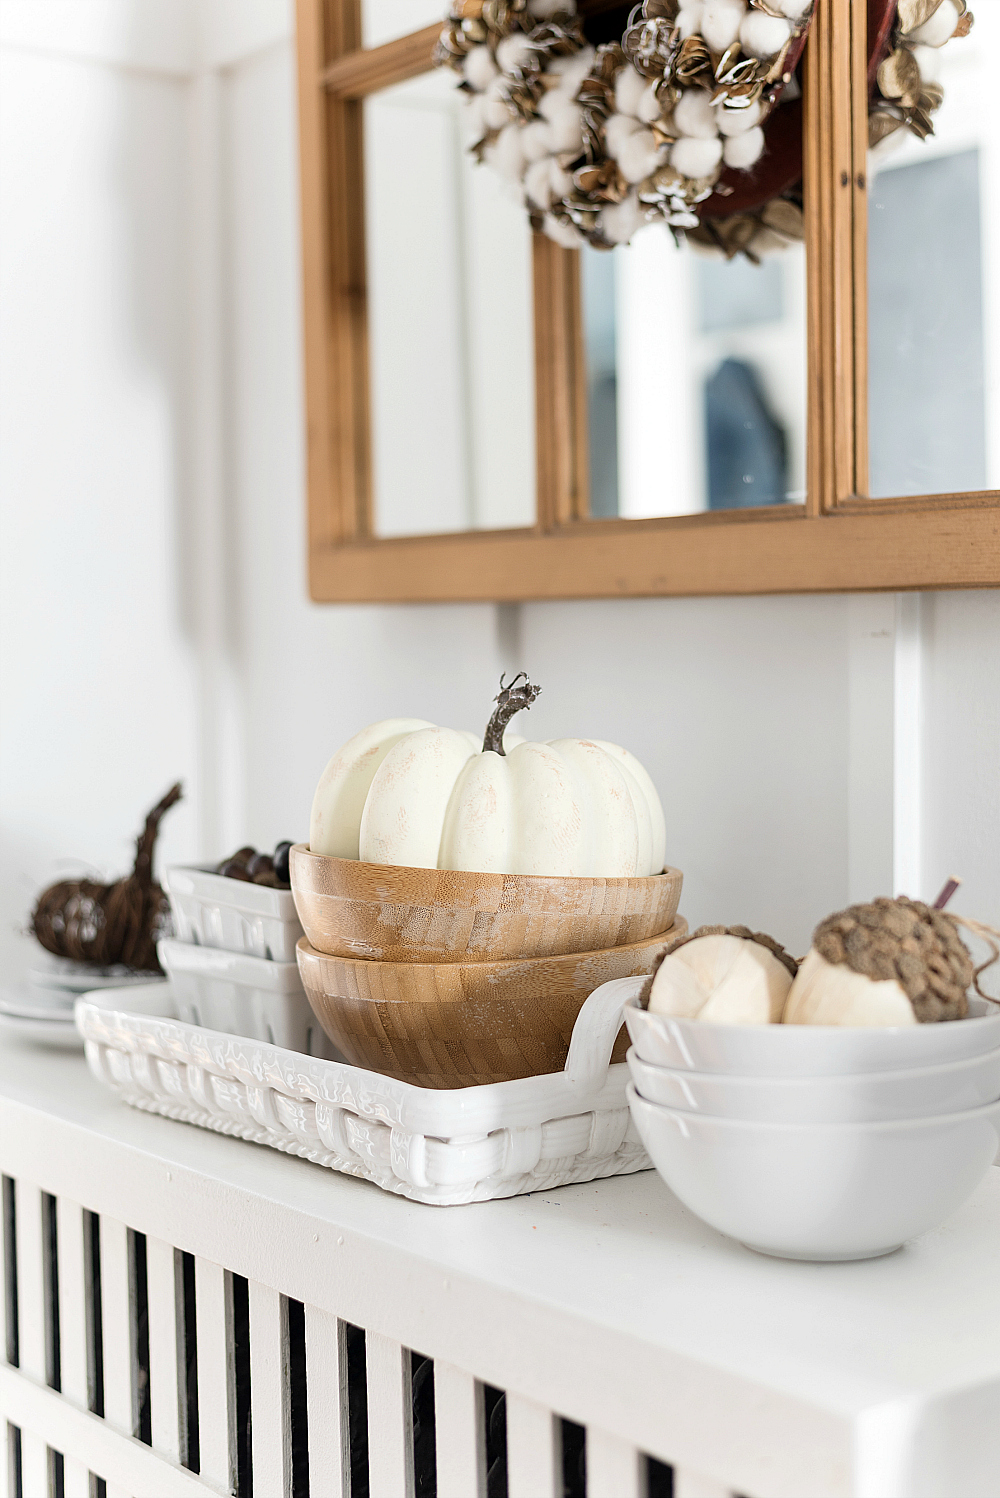 Decorating with White Pumpkins for Fall